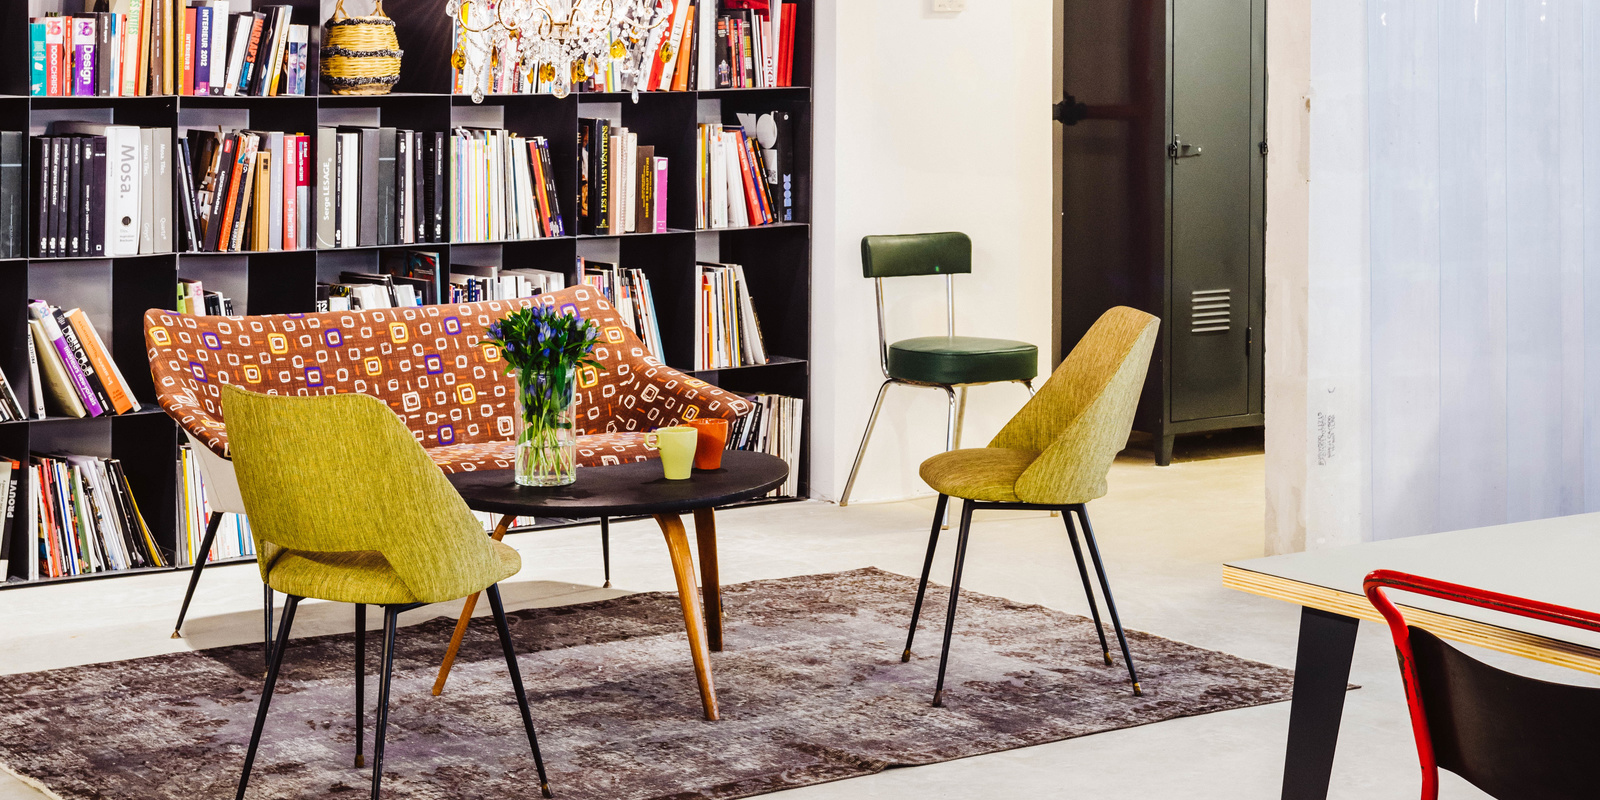 atelier rue verte le blog paris le garage central des bureaux diff rents. Black Bedroom Furniture Sets. Home Design Ideas